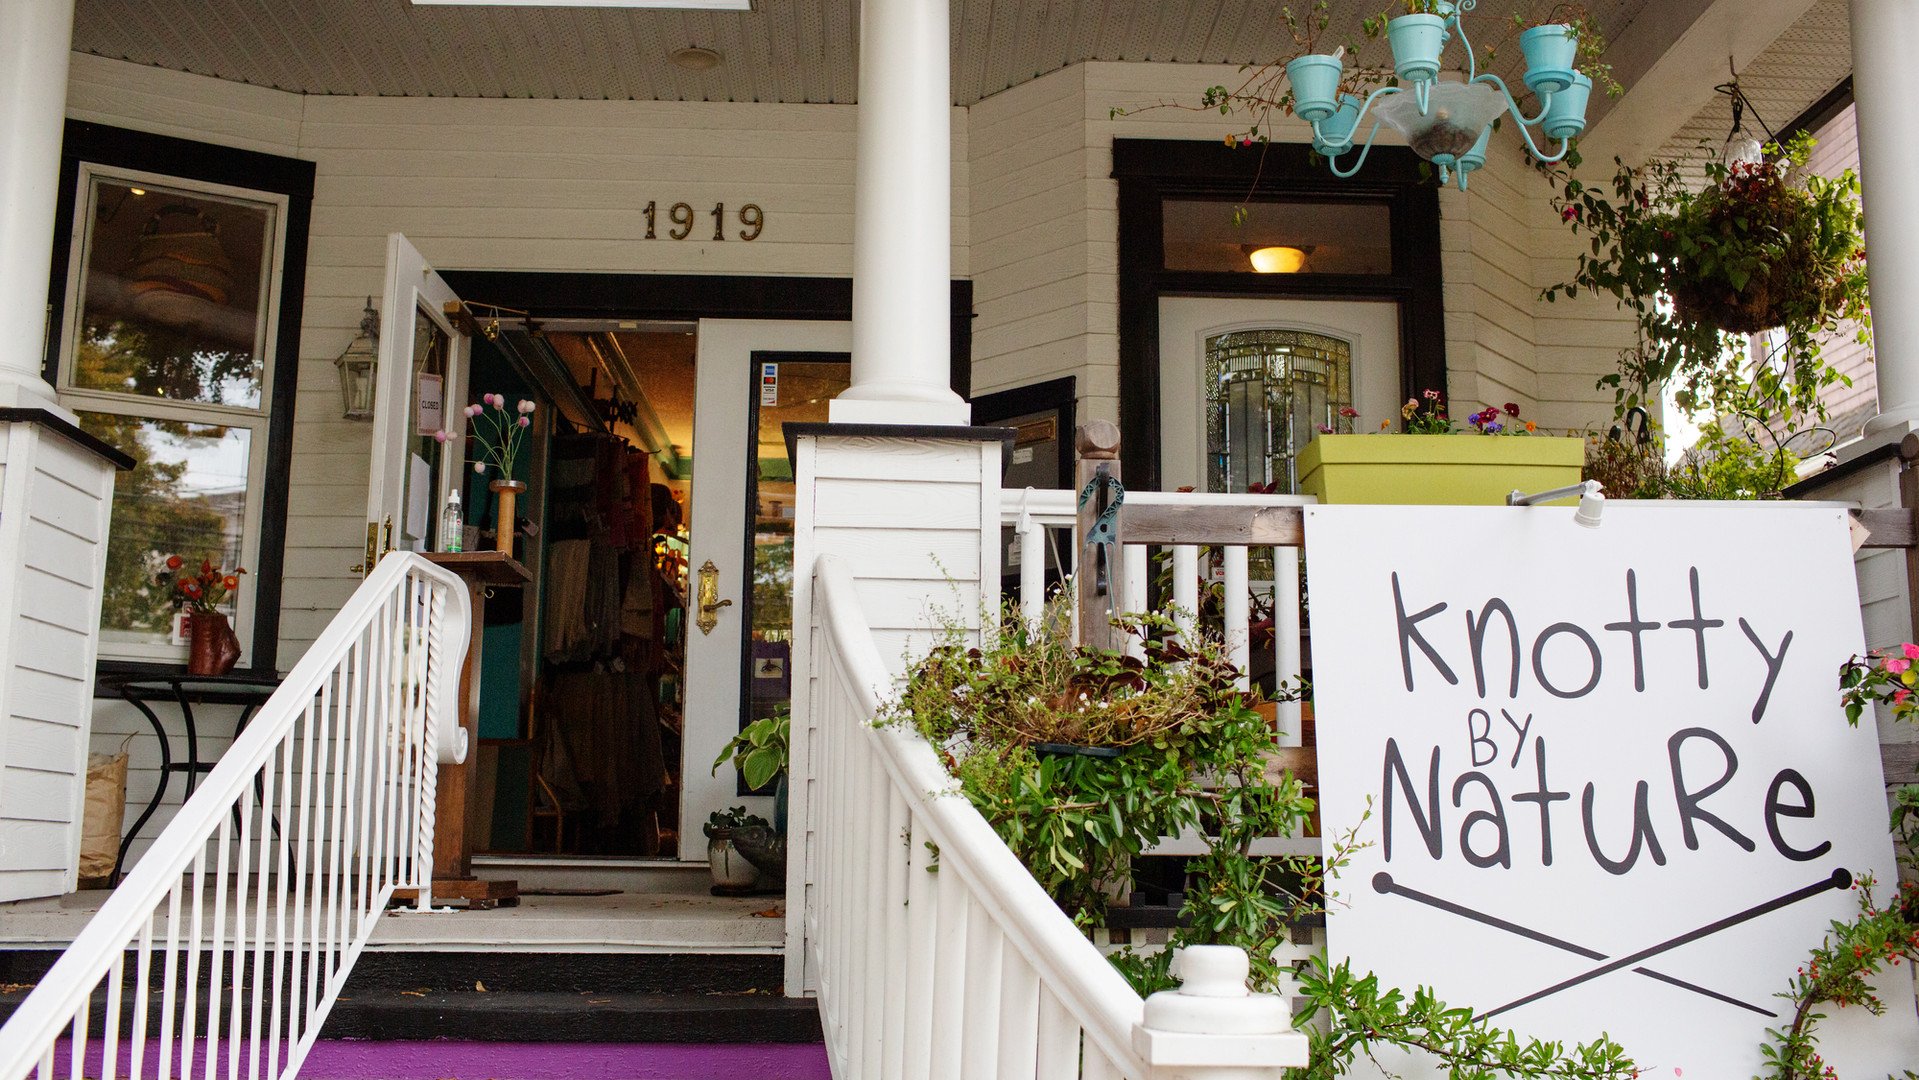 Knotty by Nature Fernwood